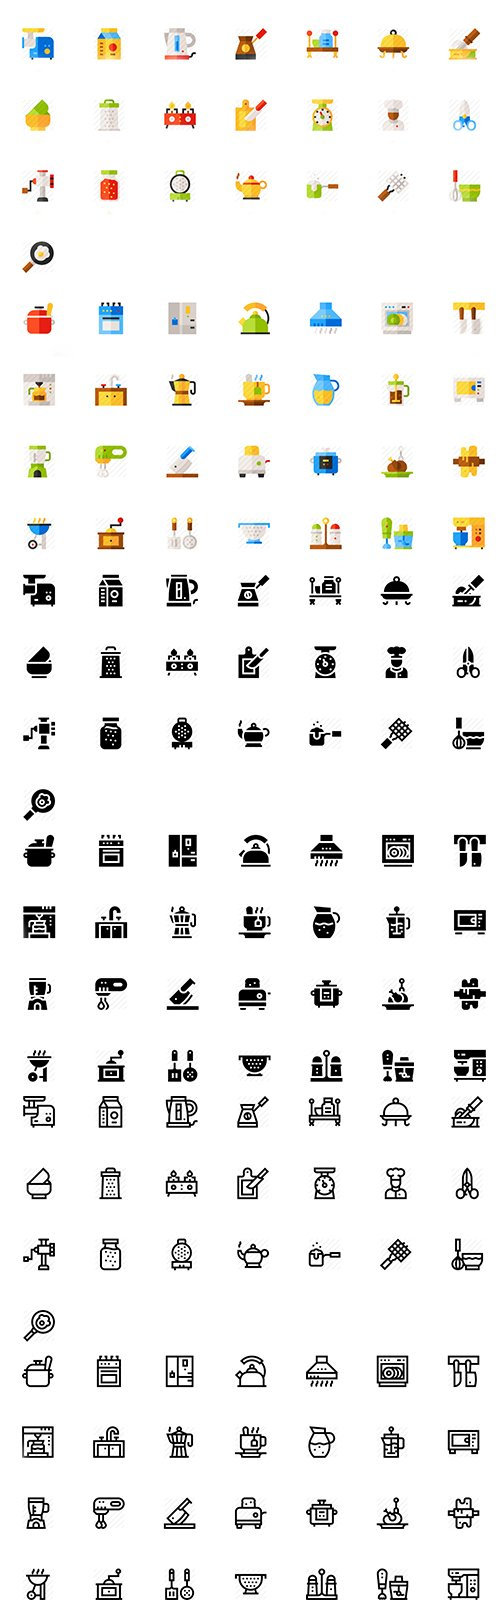 Kitchen Icon Pack 150 icons (Lineal, Flat, Filled)